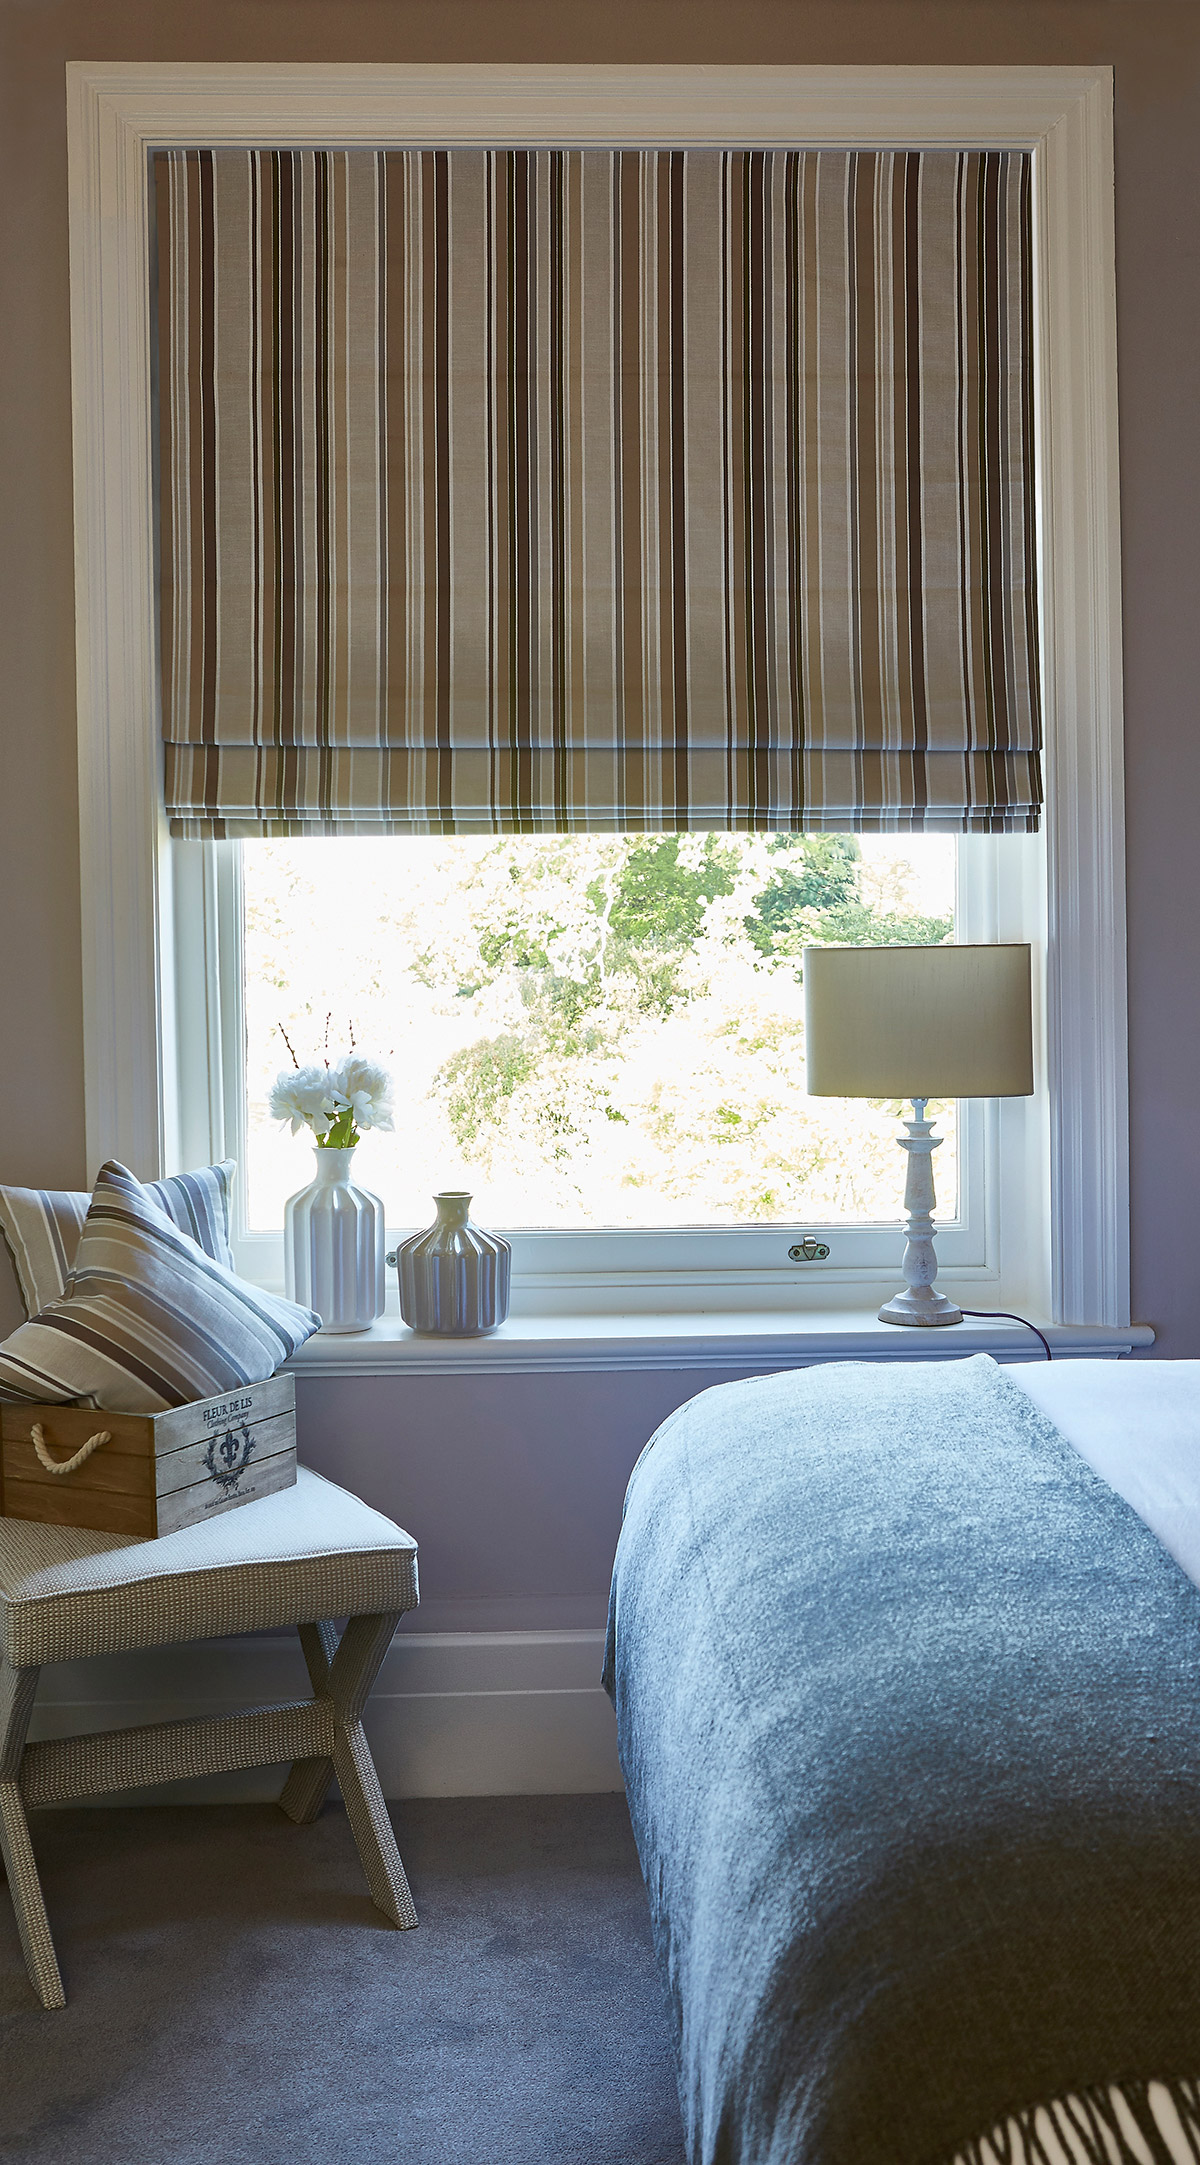 Sidmouth Parchment Roman Blind from SLX